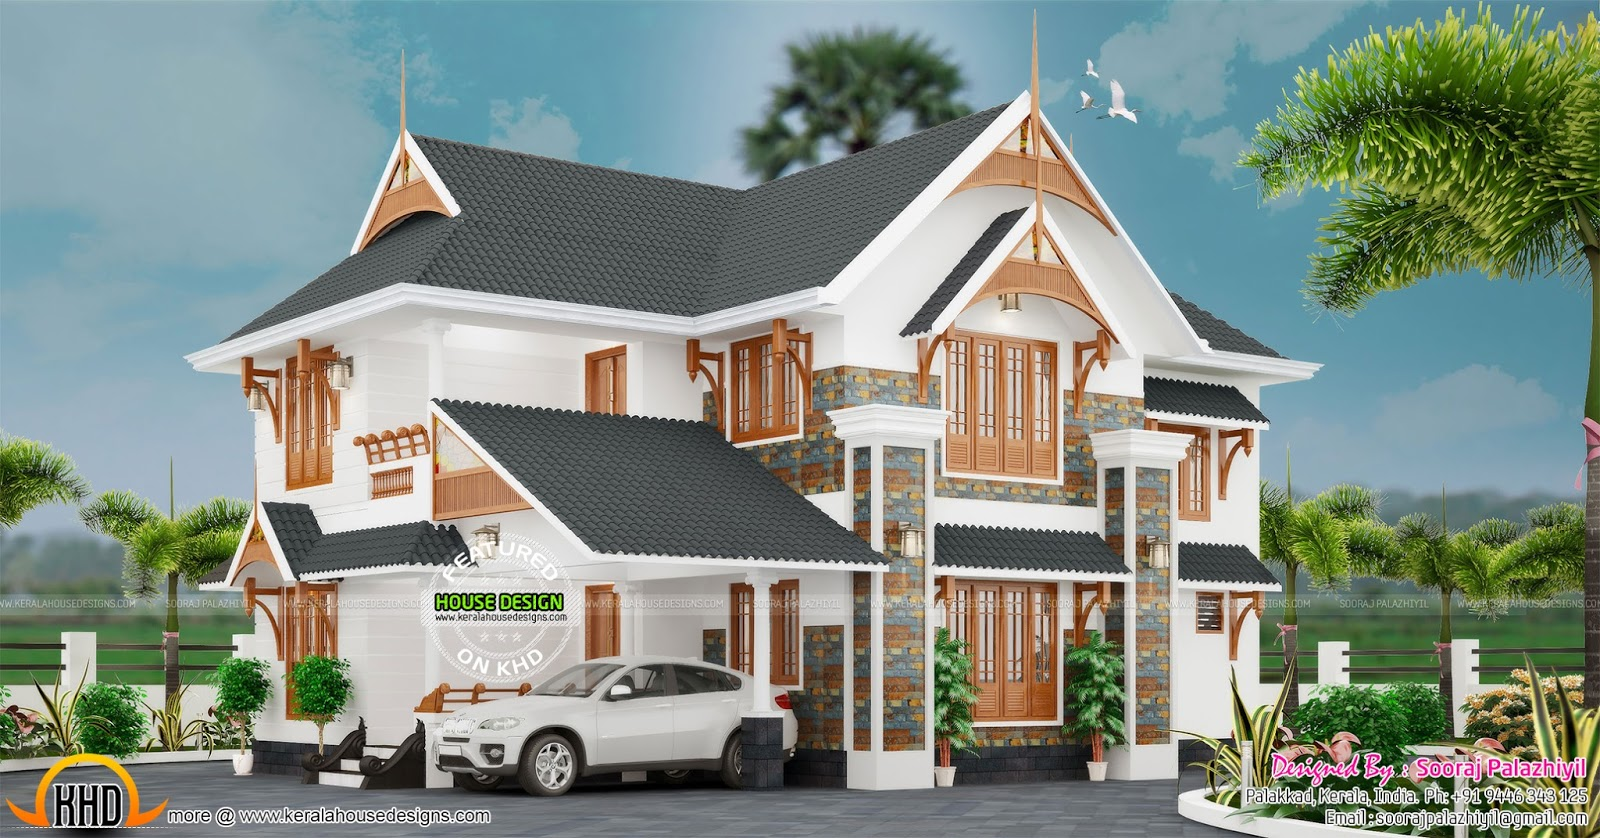 Beautiful elegant home design kerala home design and for Elegant home designs